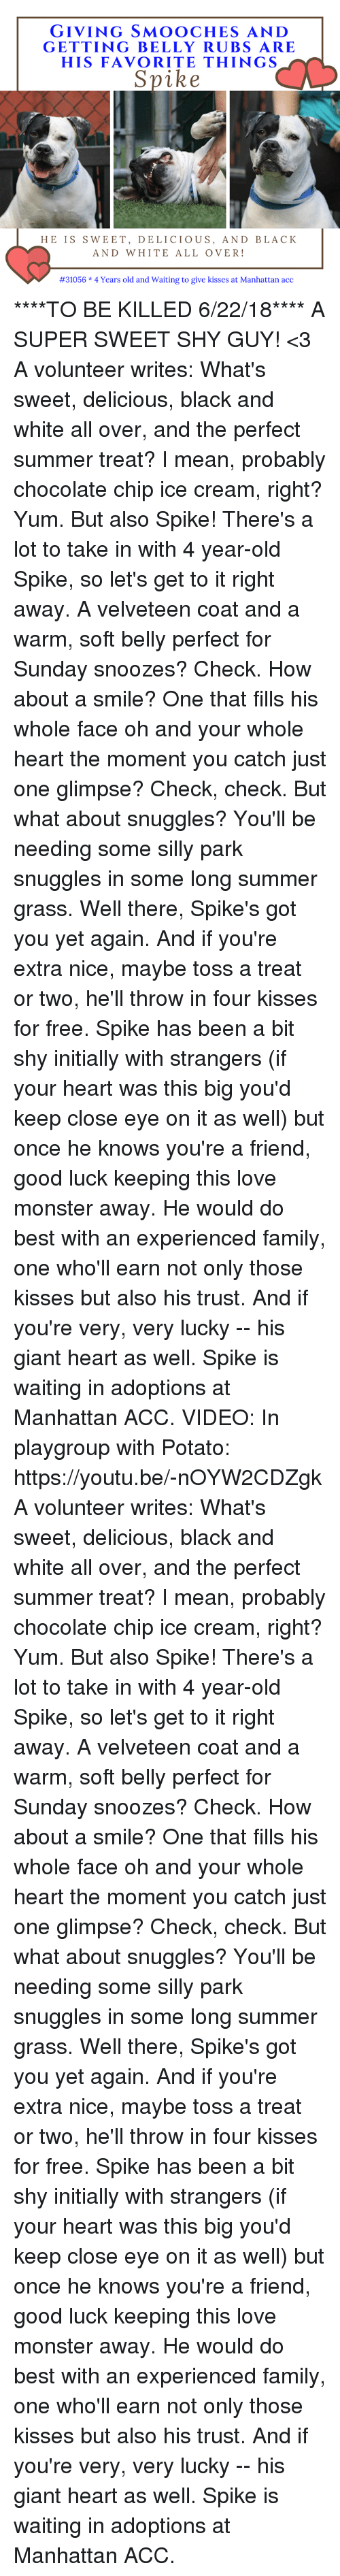 Family, Love, and Memes: GIVING SMOOCHES AND  GETTING BELLY RUBS ARE  HIS FAVORITE THINGS  HE IS SWEET, DELICIOUS, AND BLACK  AND WHITE ALL OVER!  #31056 * 4 Years old and waiting to give kisses at Manhattan acc ****TO BE KILLED 6/22/18****  A SUPER SWEET SHY GUY! <3  A volunteer writes: What's sweet, delicious, black and white all over, and the perfect summer treat? I mean, probably chocolate chip ice cream, right? Yum. But also Spike! There's a lot to take in with 4 year-old Spike, so let's get to it right away. A velveteen coat and a warm, soft belly perfect for Sunday snoozes? Check. How about a smile? One that fills his whole face oh and your whole heart the moment you catch just one glimpse? Check, check. But what about snuggles? You'll be needing some silly park snuggles in some long summer grass. Well there, Spike's got you yet again. And if you're extra nice, maybe toss a treat or two, he'll throw in four kisses for free. Spike has been a bit shy initially with strangers (if your heart was this big you'd keep close eye on it as well) but once he knows you're a friend, good luck keeping this love monster away. He would do best with an experienced family, one who'll earn not only those kisses but also his trust. And if you're very, very lucky -- his giant heart as well. Spike is waiting in adoptions at Manhattan ACC.  VIDEO:  In playgroup with Potato: https://youtu.be/-nOYW2CDZgk  A volunteer writes: What's sweet, delicious, black and white all over, and the perfect summer treat? I mean, probably chocolate chip ice cream, right? Yum. But also Spike! There's a lot to take in with 4 year-old Spike, so let's get to it right away. A velveteen coat and a warm, soft belly perfect for Sunday snoozes? Check. How about a smile? One that fills his whole face oh and your whole heart the moment you catch just one glimpse? Check, check. But what about snuggles? You'll be needing some silly park snuggles in some long summer grass. Well there, Spike's got you yet again. And